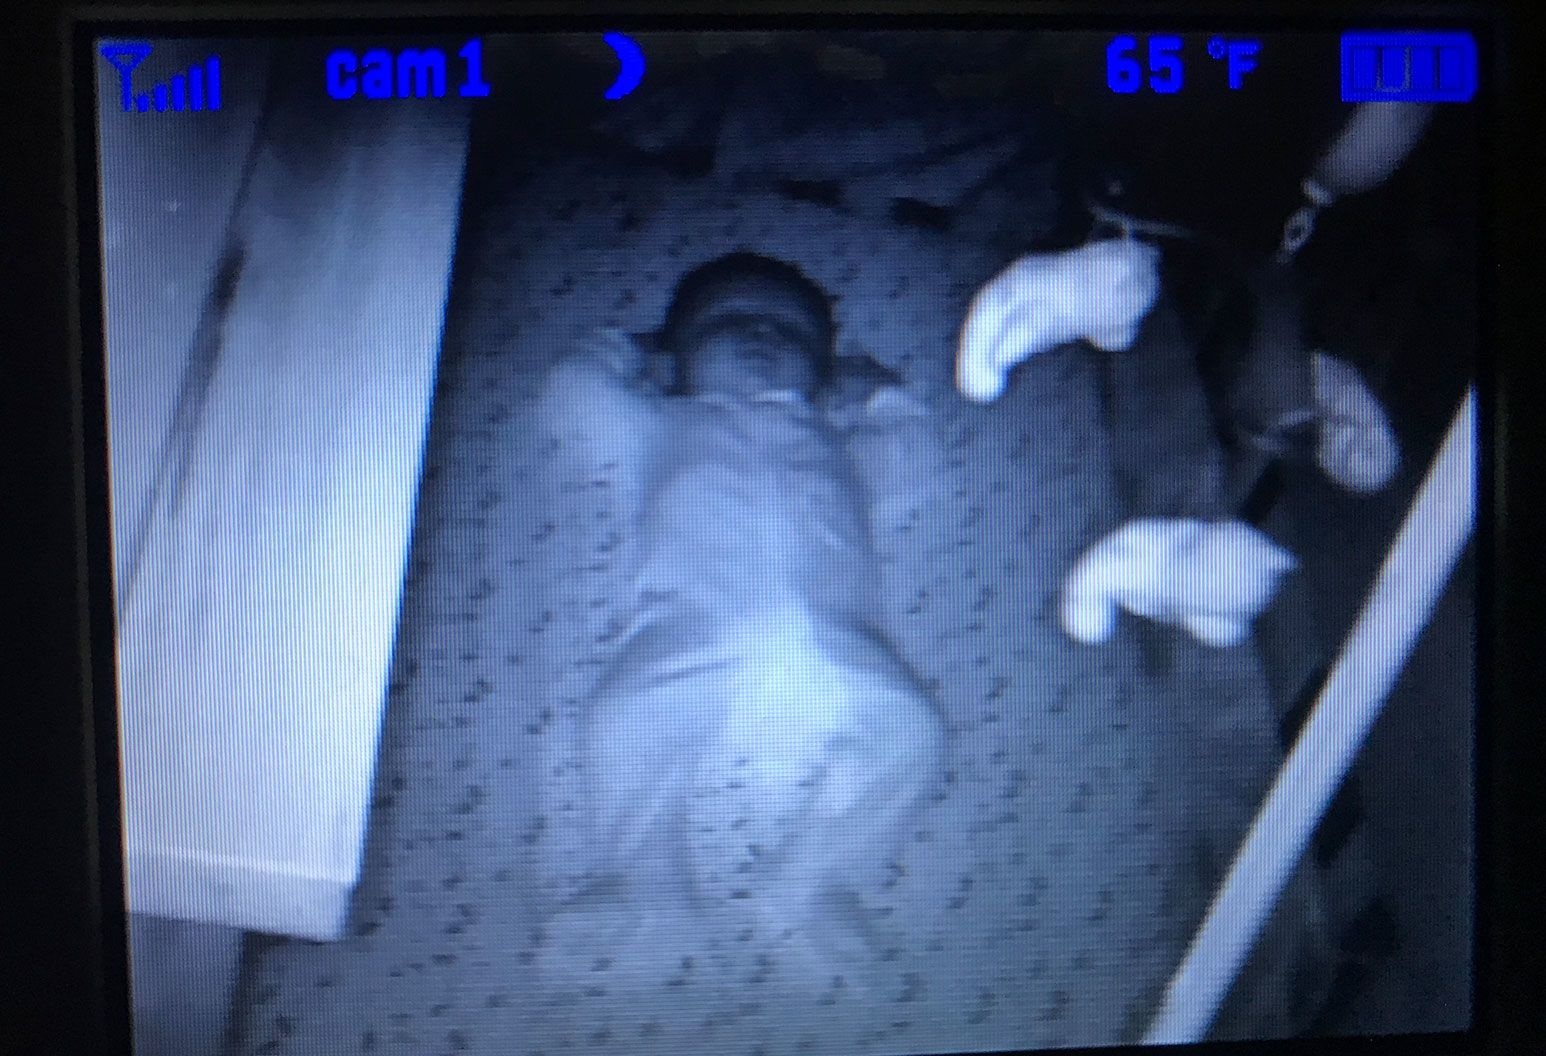 A baby monitor screen shows a baby laying down on it's back in a crib with his arms by his head.